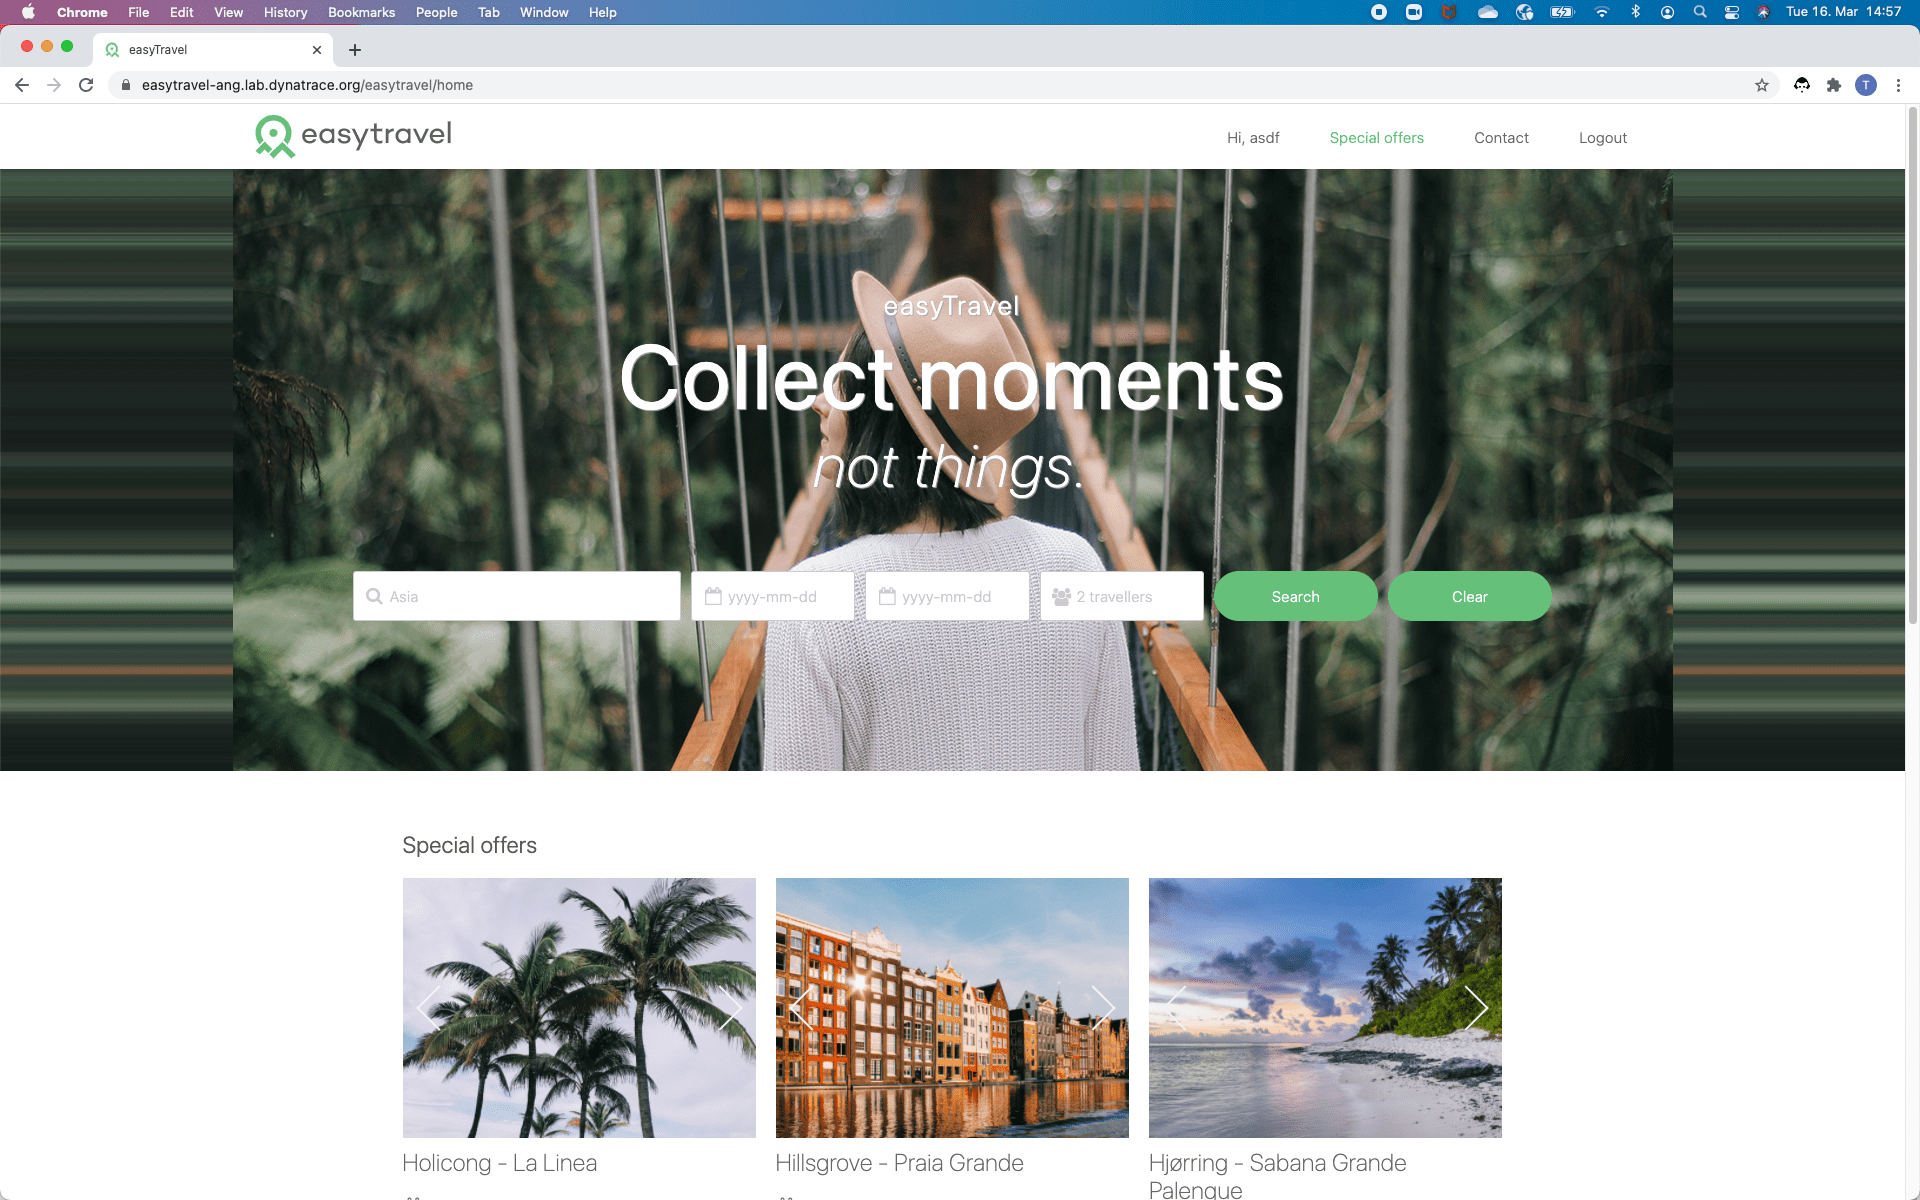 EasyTravel page